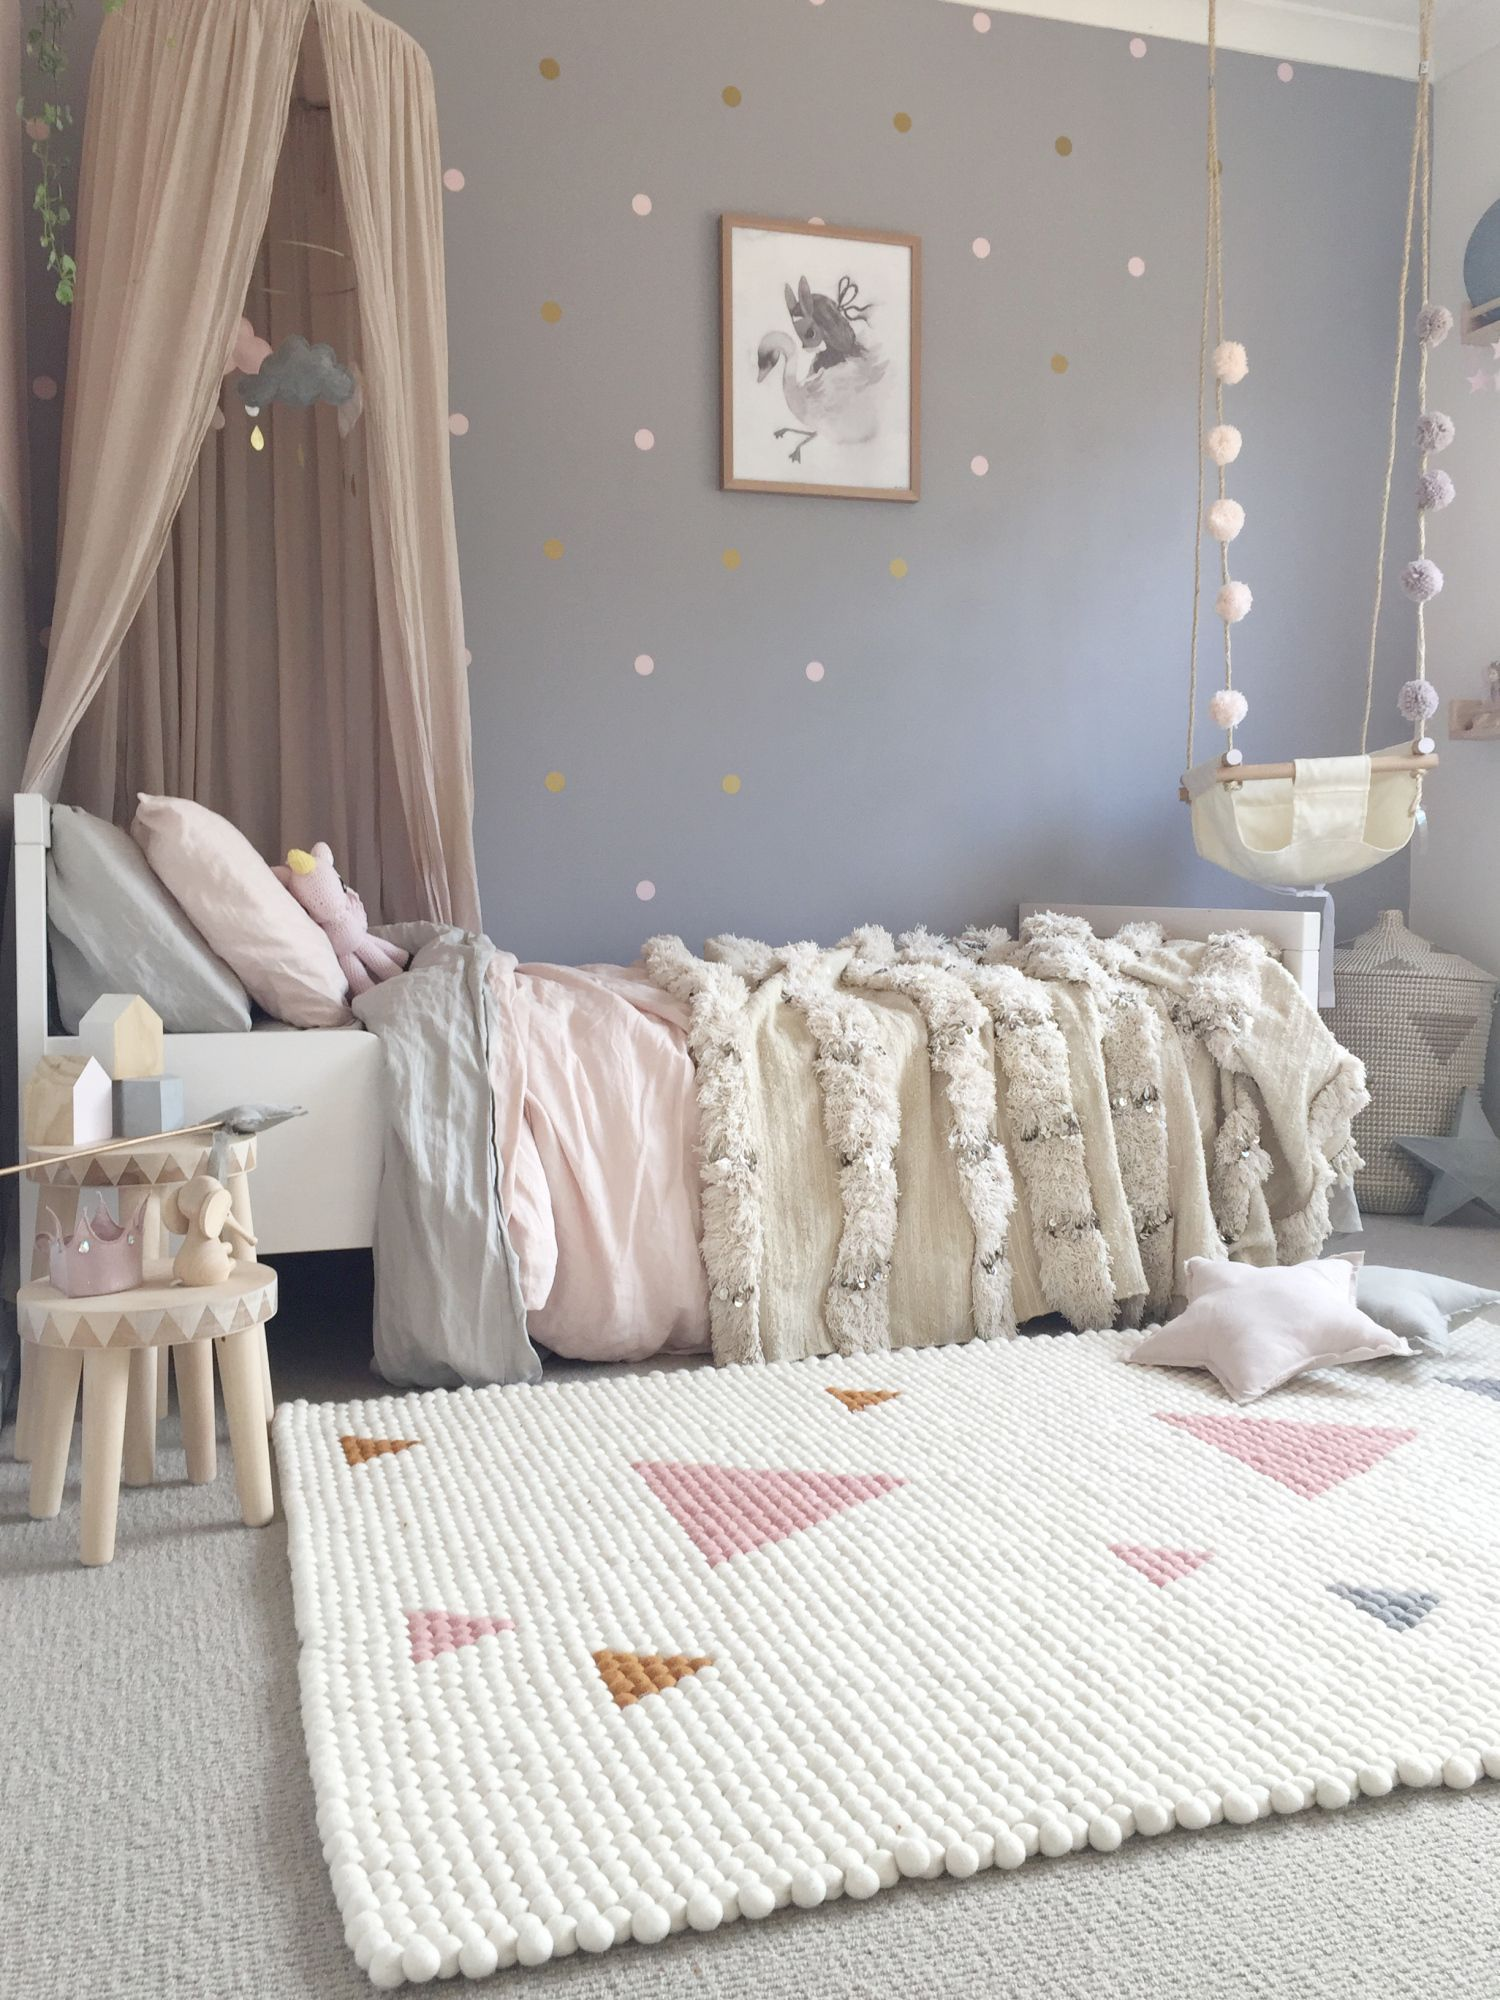 I Have A Serious Love For Interior Design And Styling So Of Course My First  Born Was Bound To Have A Fabulous Bedroom. Mind You Itu0027s The First Room To  Be ...